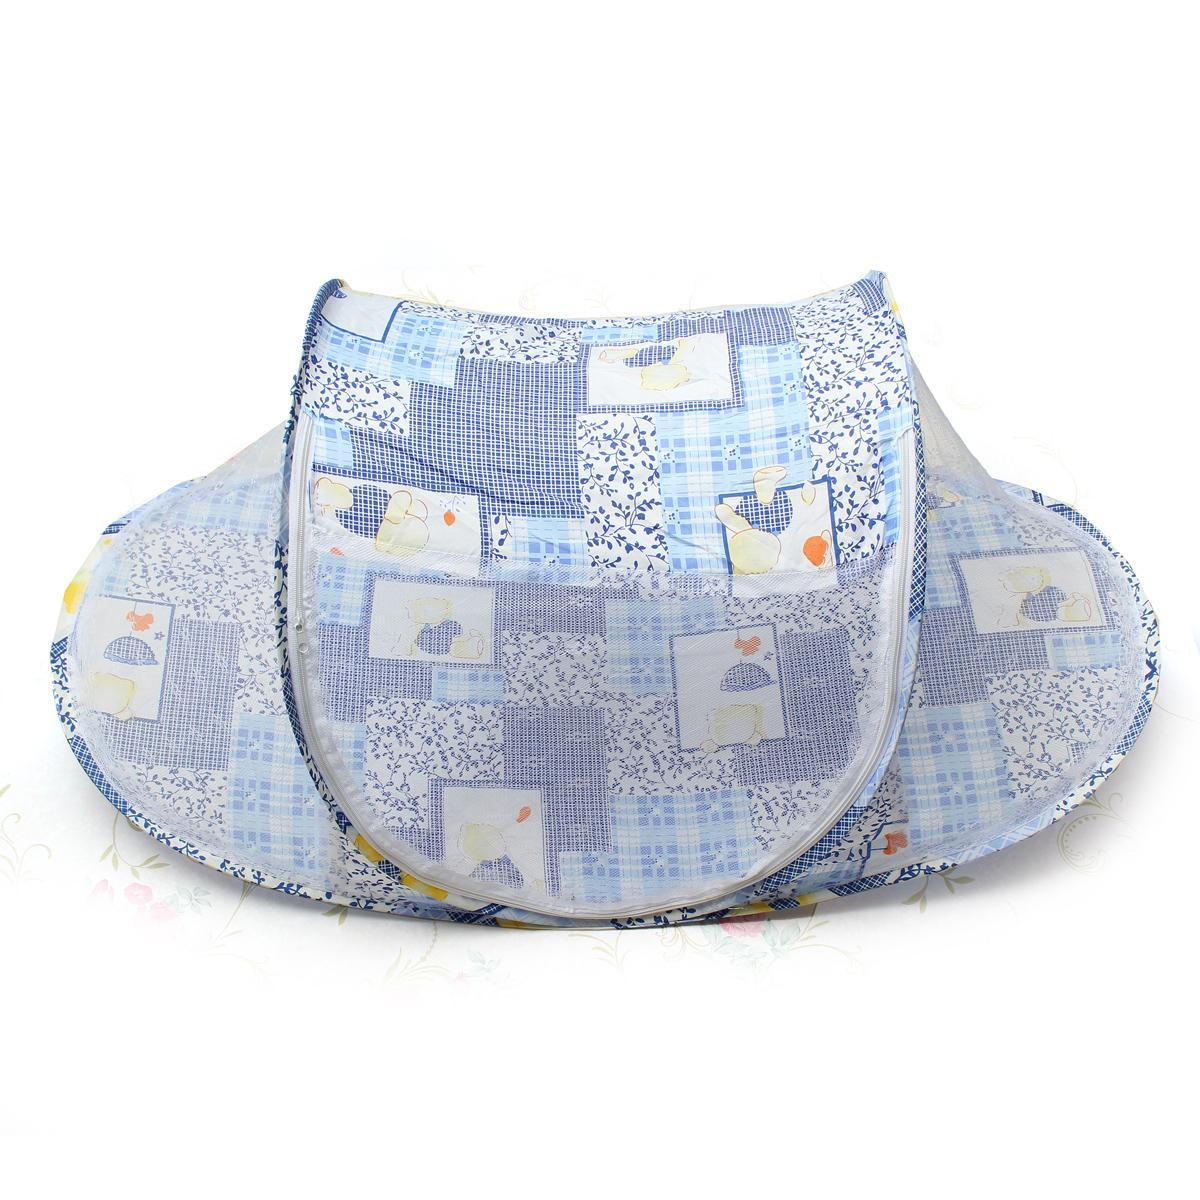 Baby bed net - 2015 New Baby Foldable Safty Mosquito Net Boat Style Playpen Shade Travel Tent Bed Blue Baby Crib Sheets Crib Mobile From Wjp942017 19 34 Dhgate Com